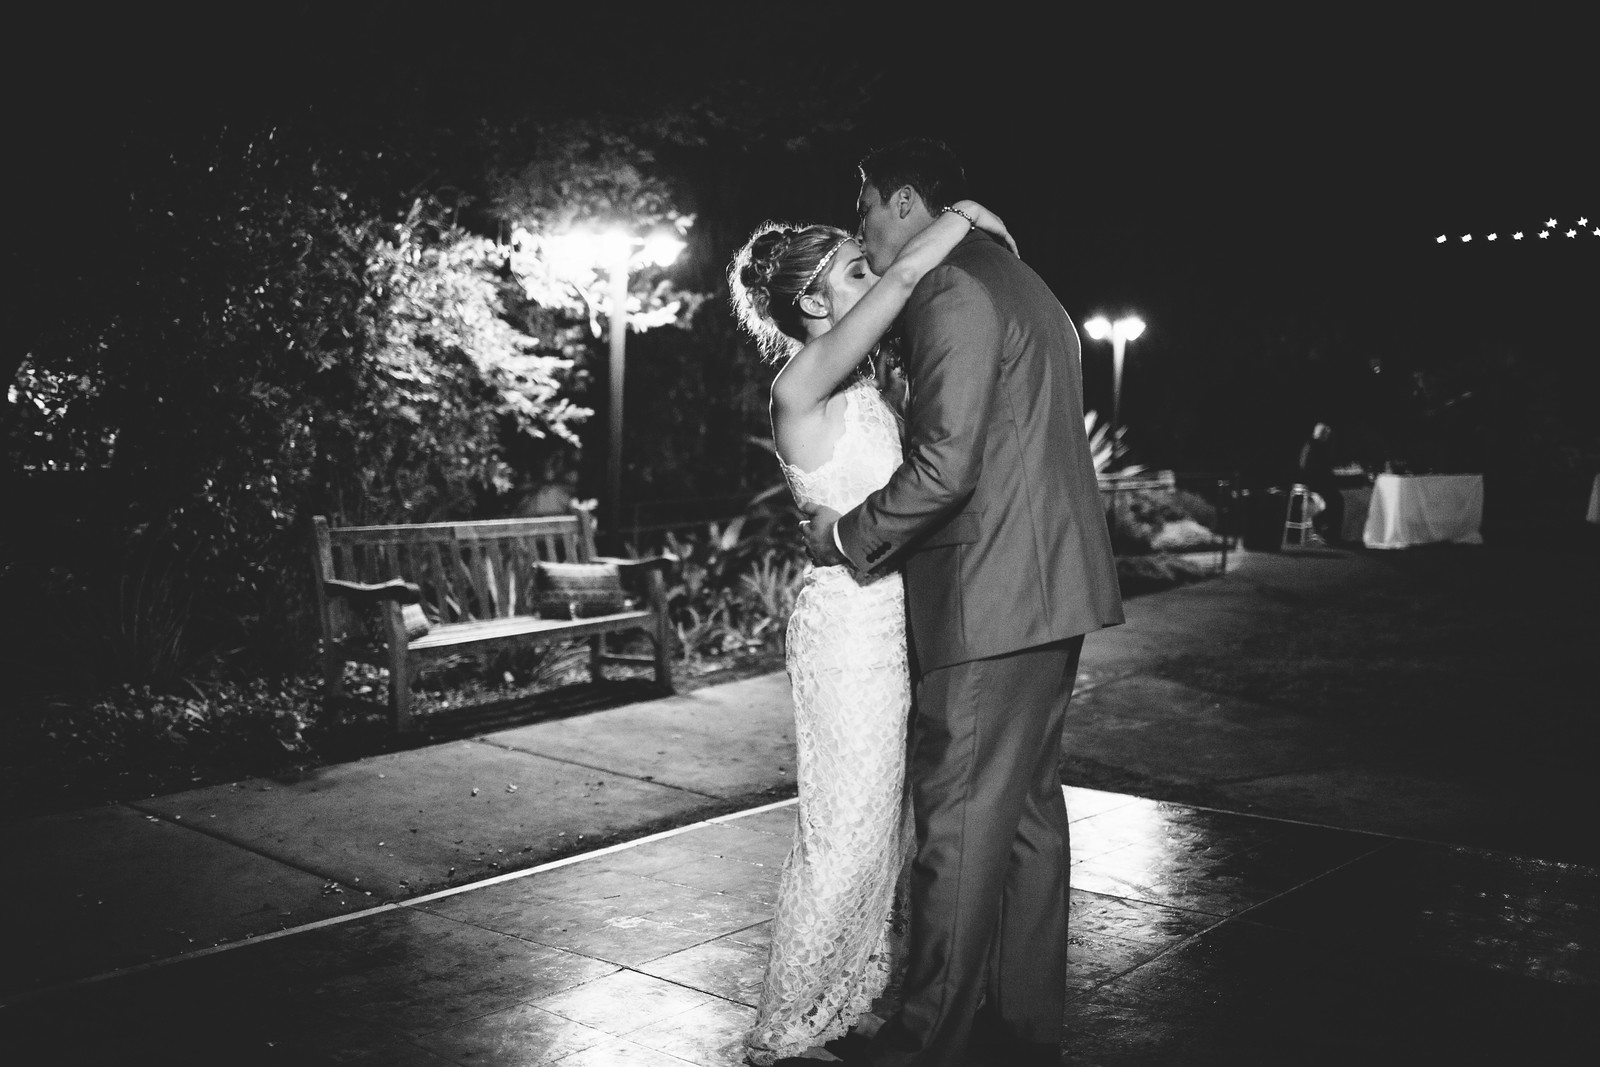 sandiego-botanic-garden-wedding-48.jpg